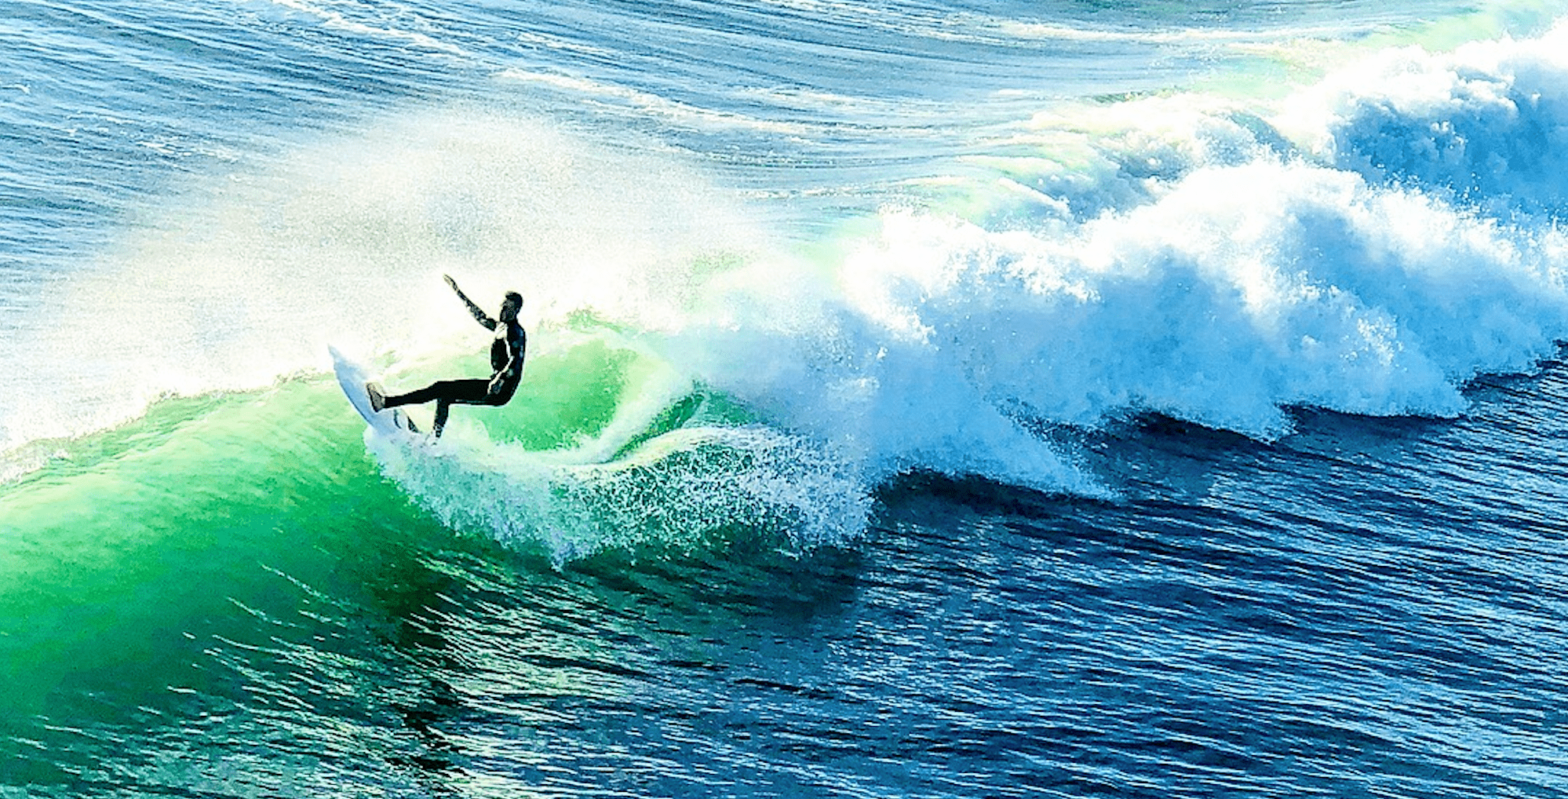 Surf Clubs of America Surfer Riding a Wave